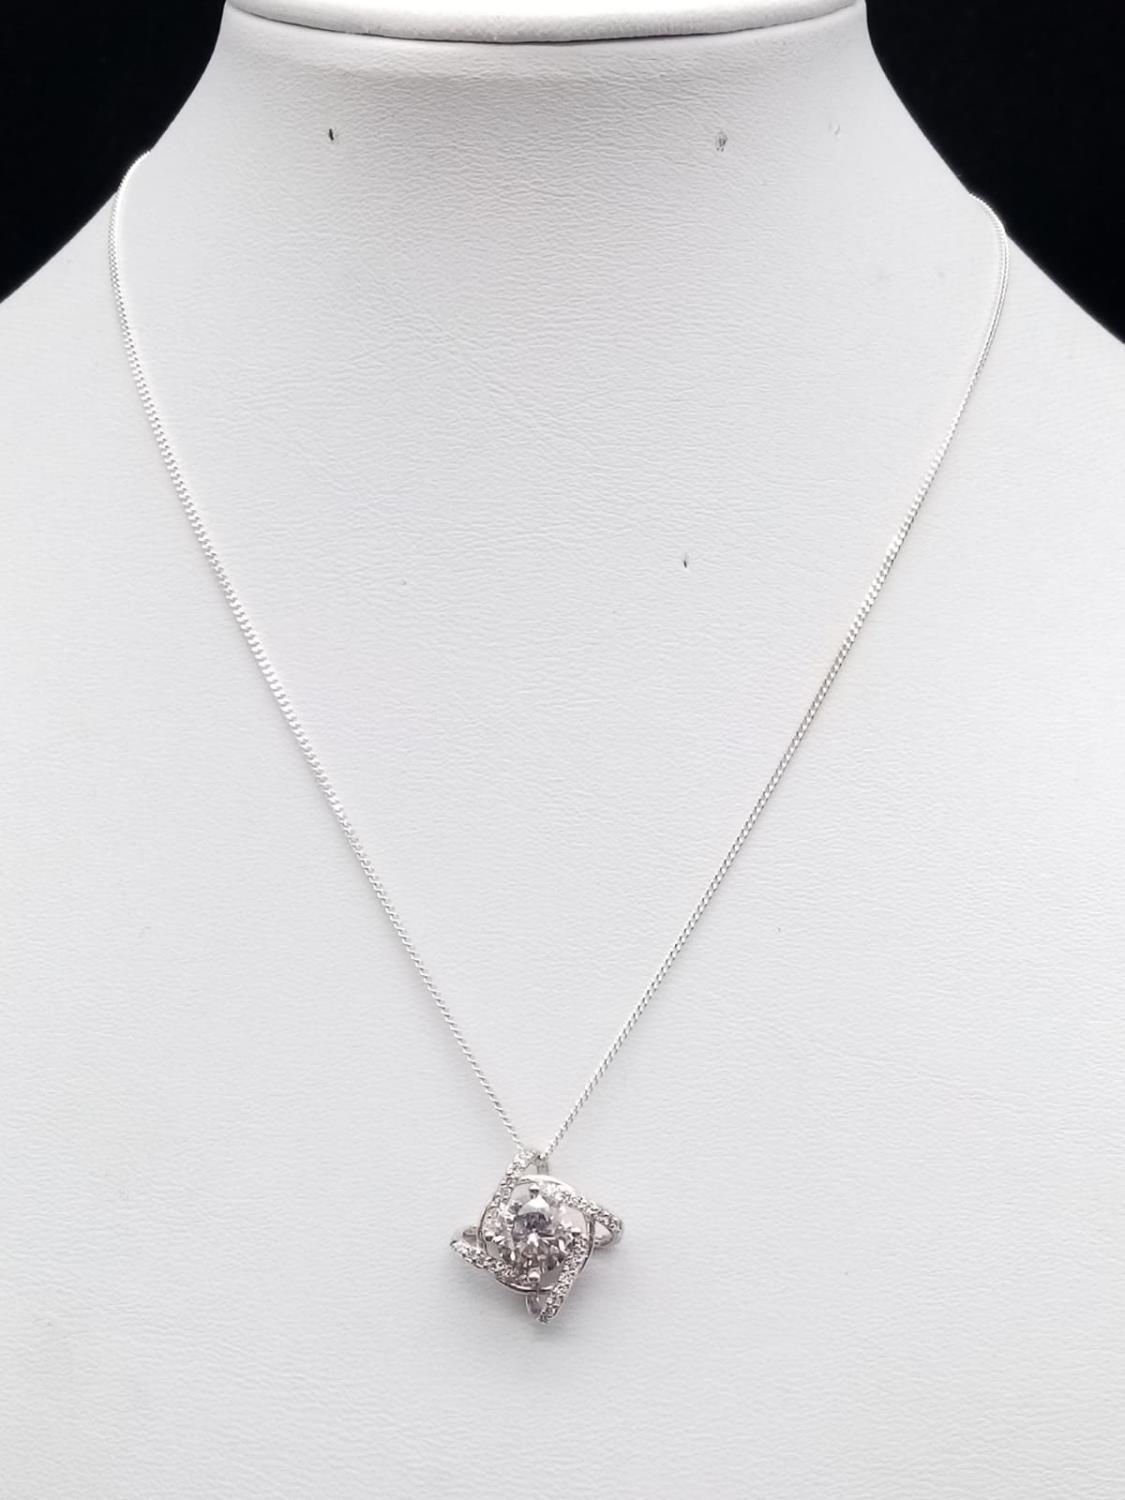 Sterling Silver Stone Set Pendant Necklace on sterling Silver Chain in presentation box. 36cm. 3g - Image 2 of 7